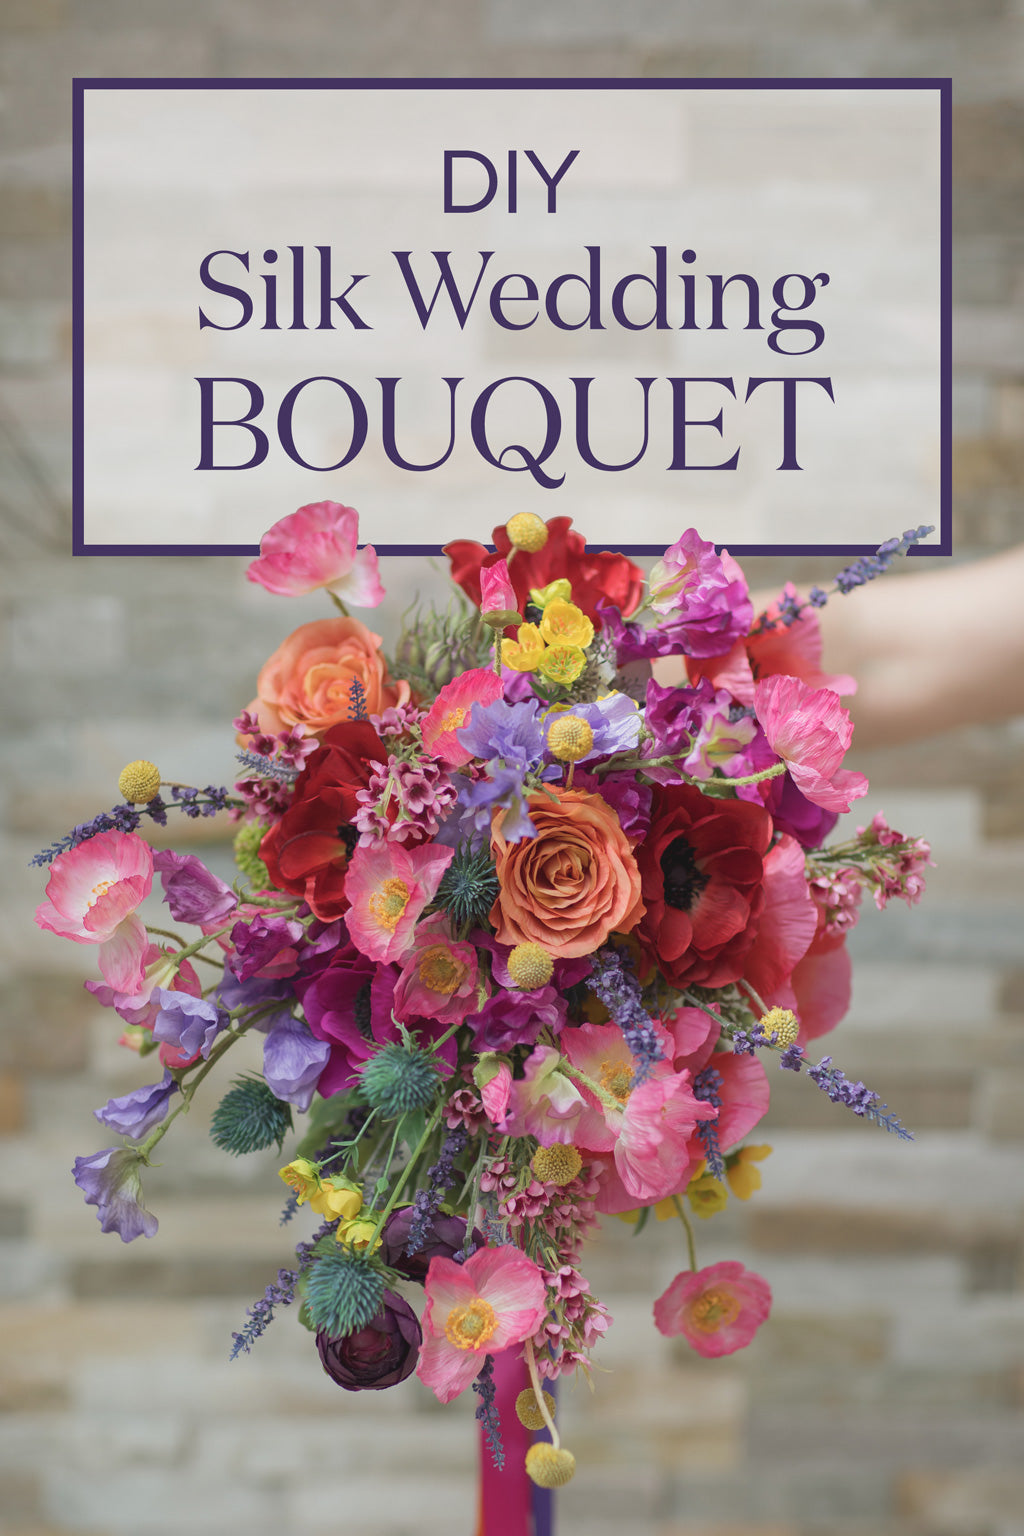 Silk Wedding Bouquet Diy Bouquet How To Make A Bouquet Afloral